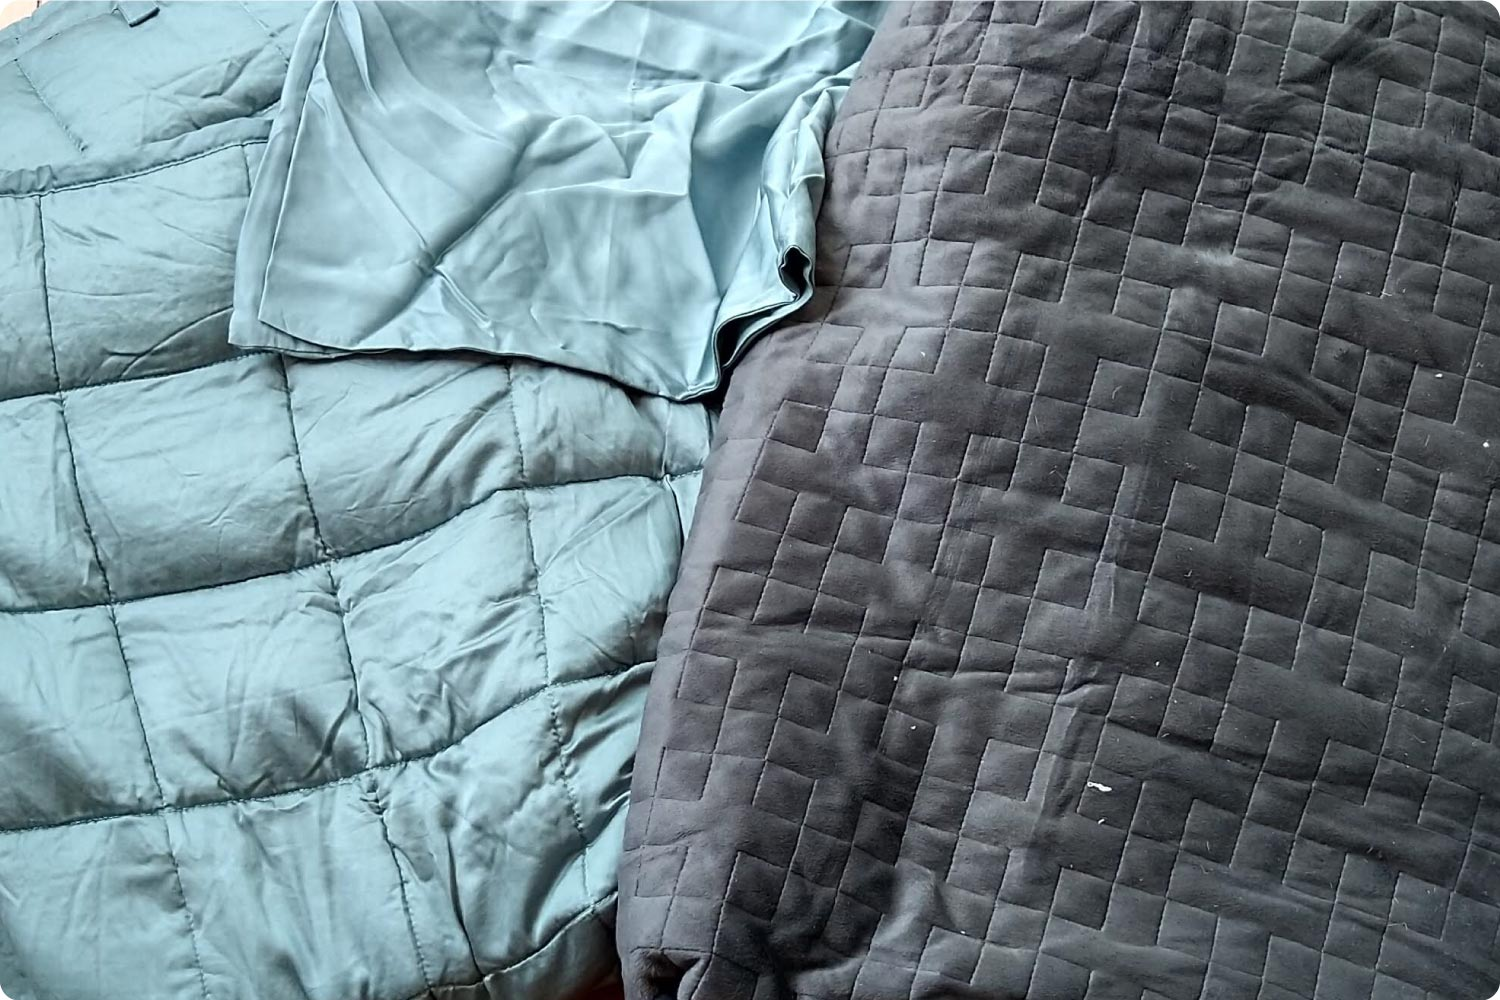 Minky and Bamboo weighted blankets side by side